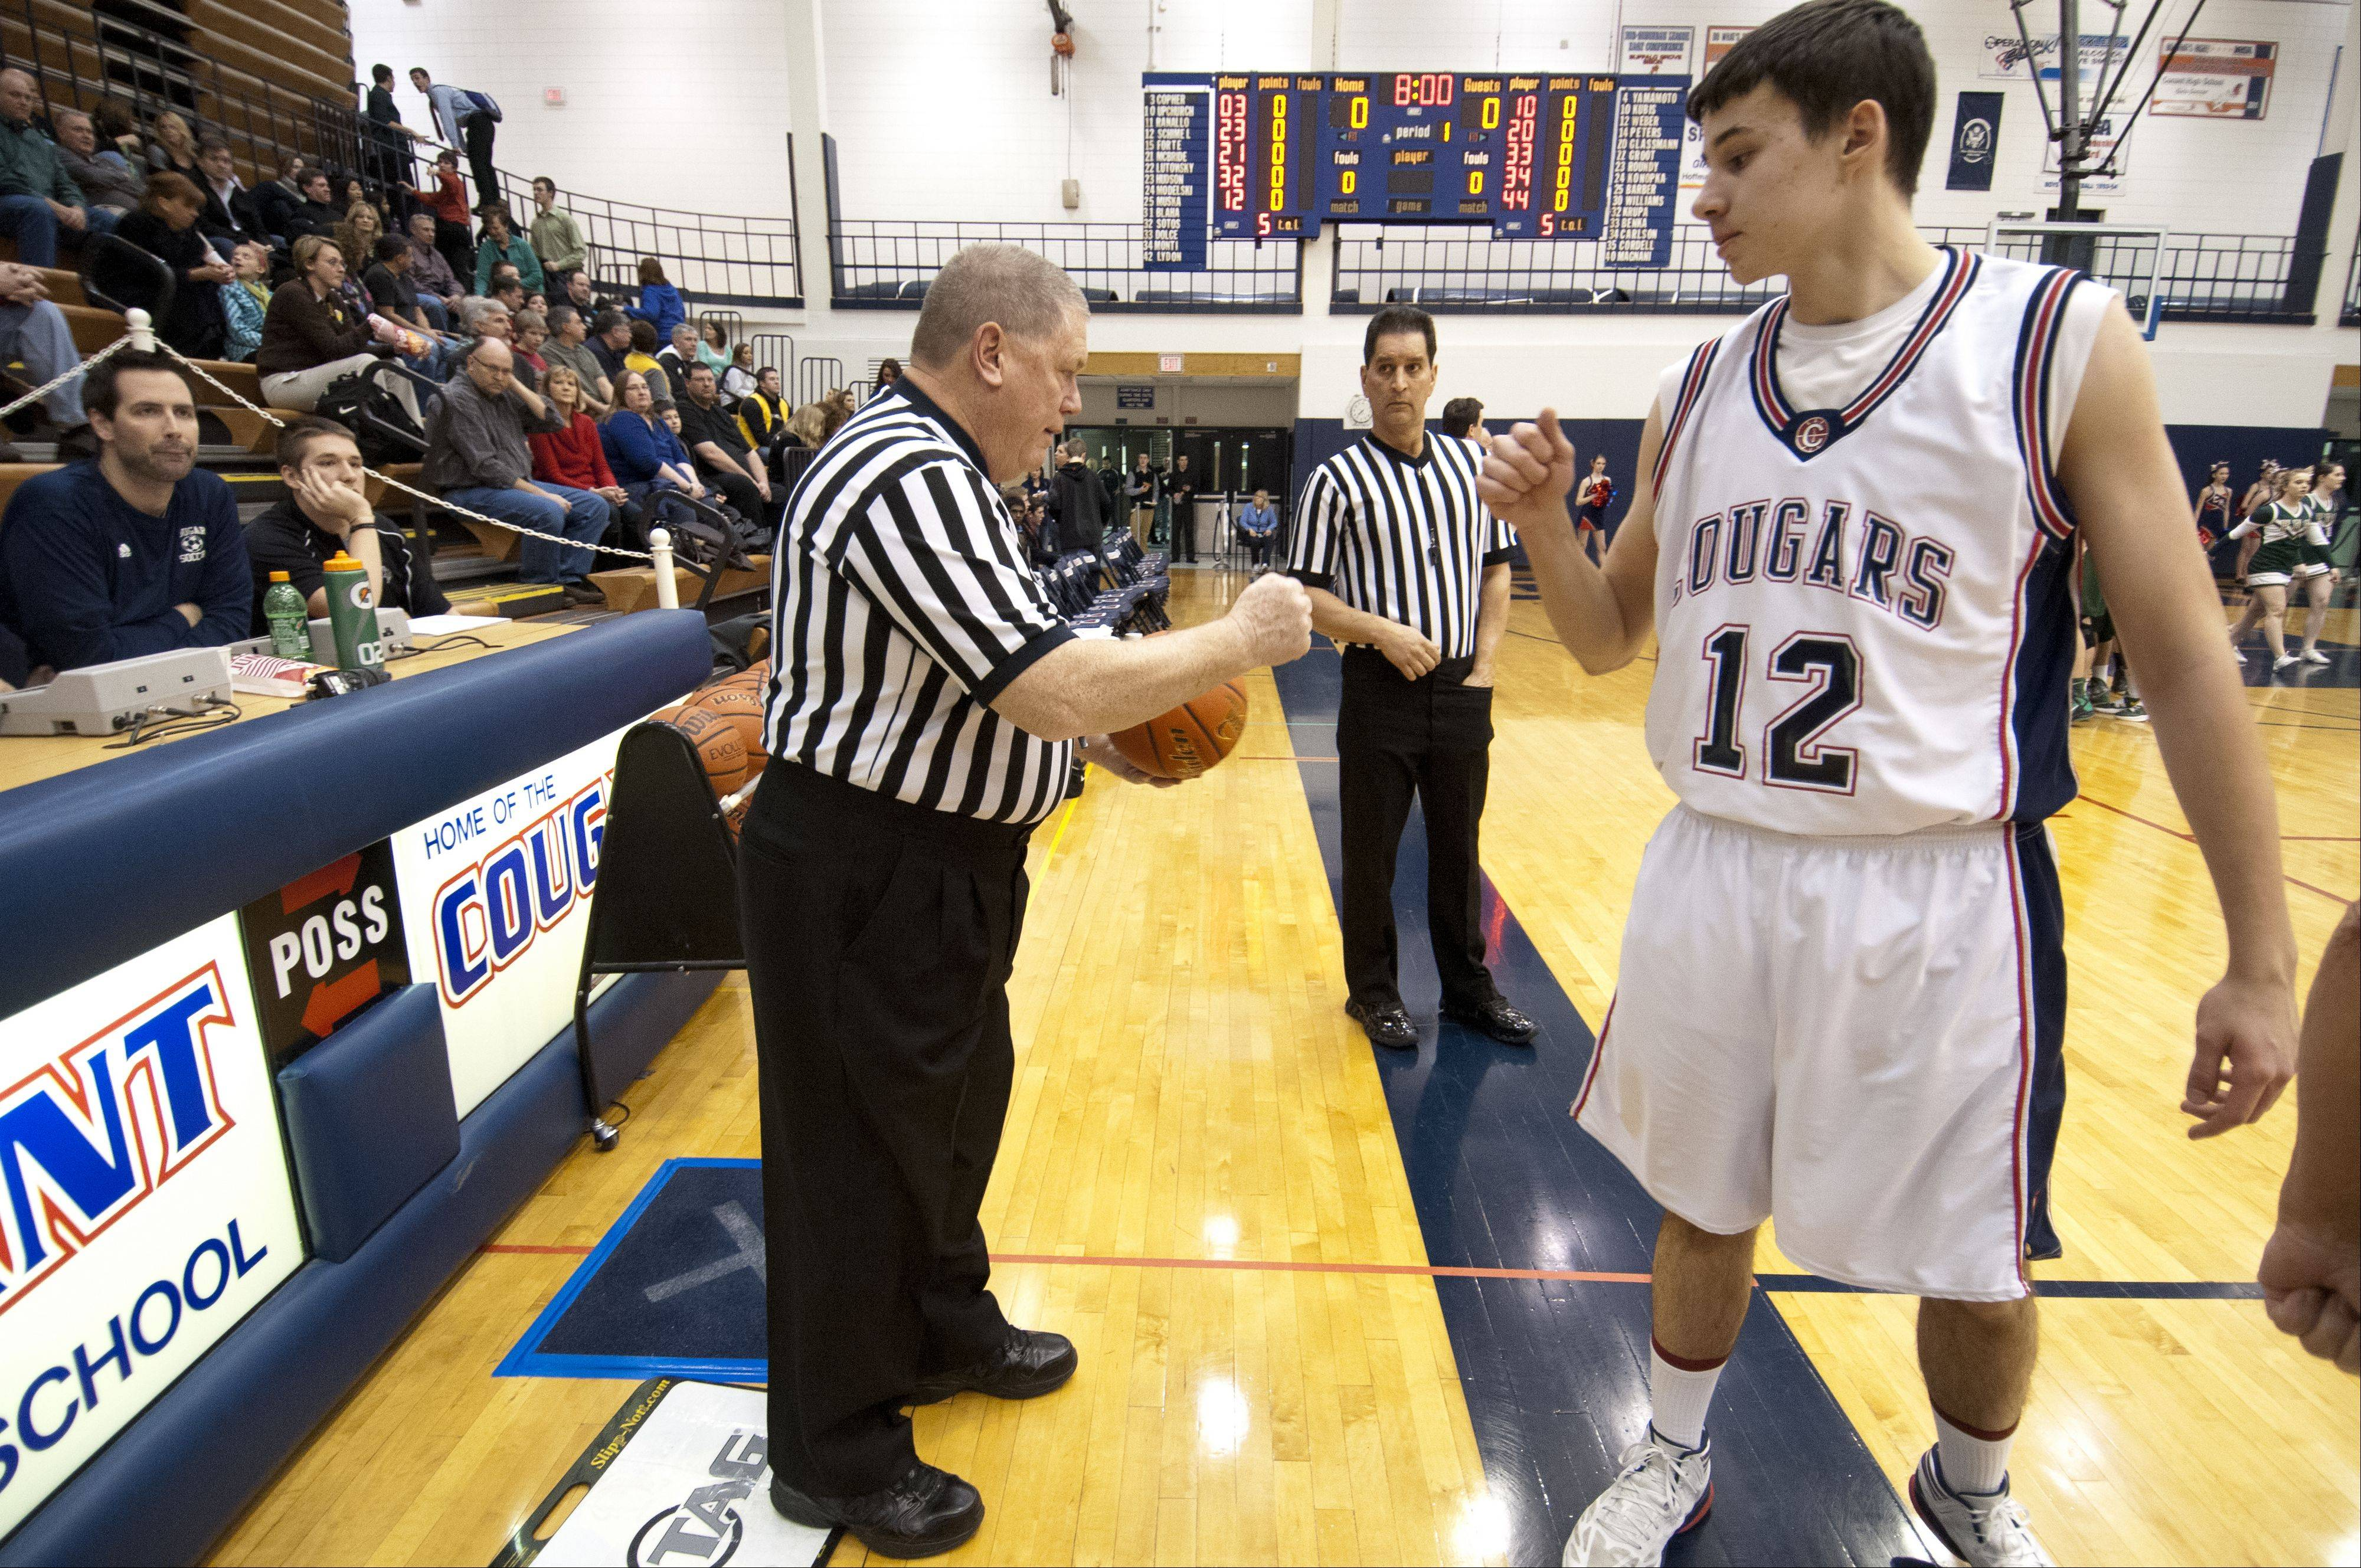 IHSA referee Rick Bieterman greets players with a fist bump before the start of a game between Fremd and Conant.